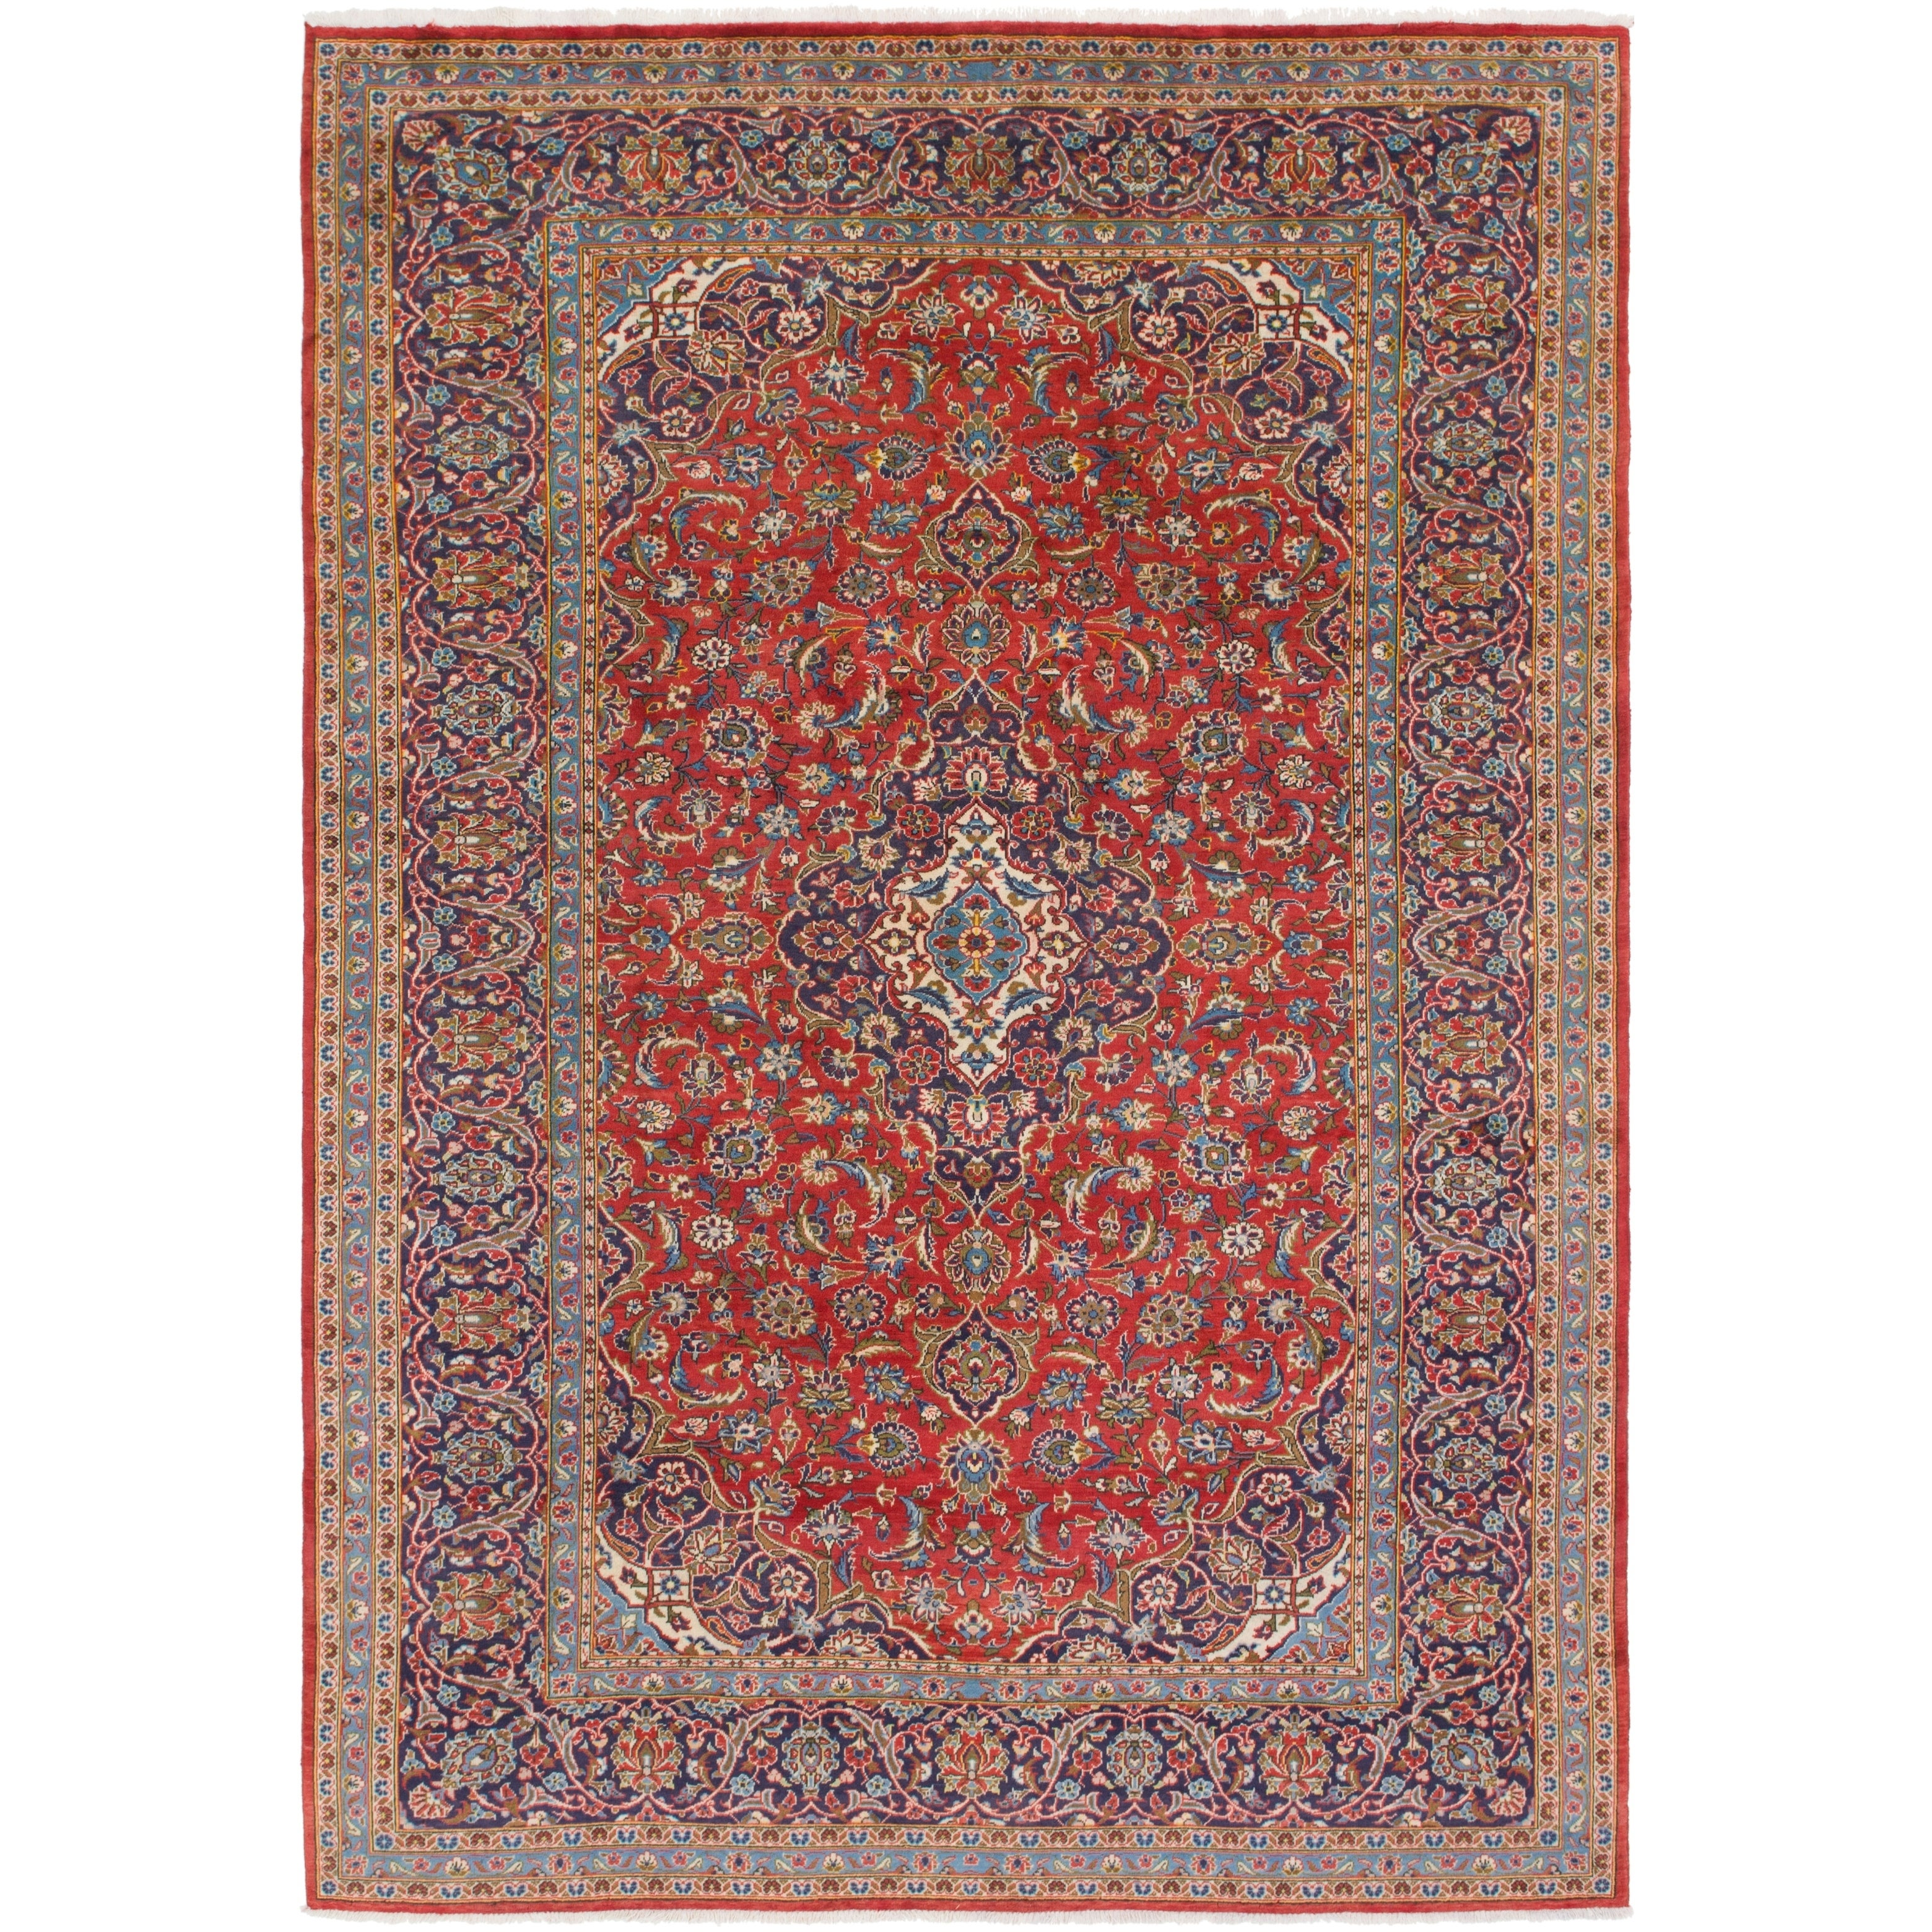 Hand Knotted Kashan Antique Wool Area Rug - 9 x 13 2 (Red - 9 x 13 2)